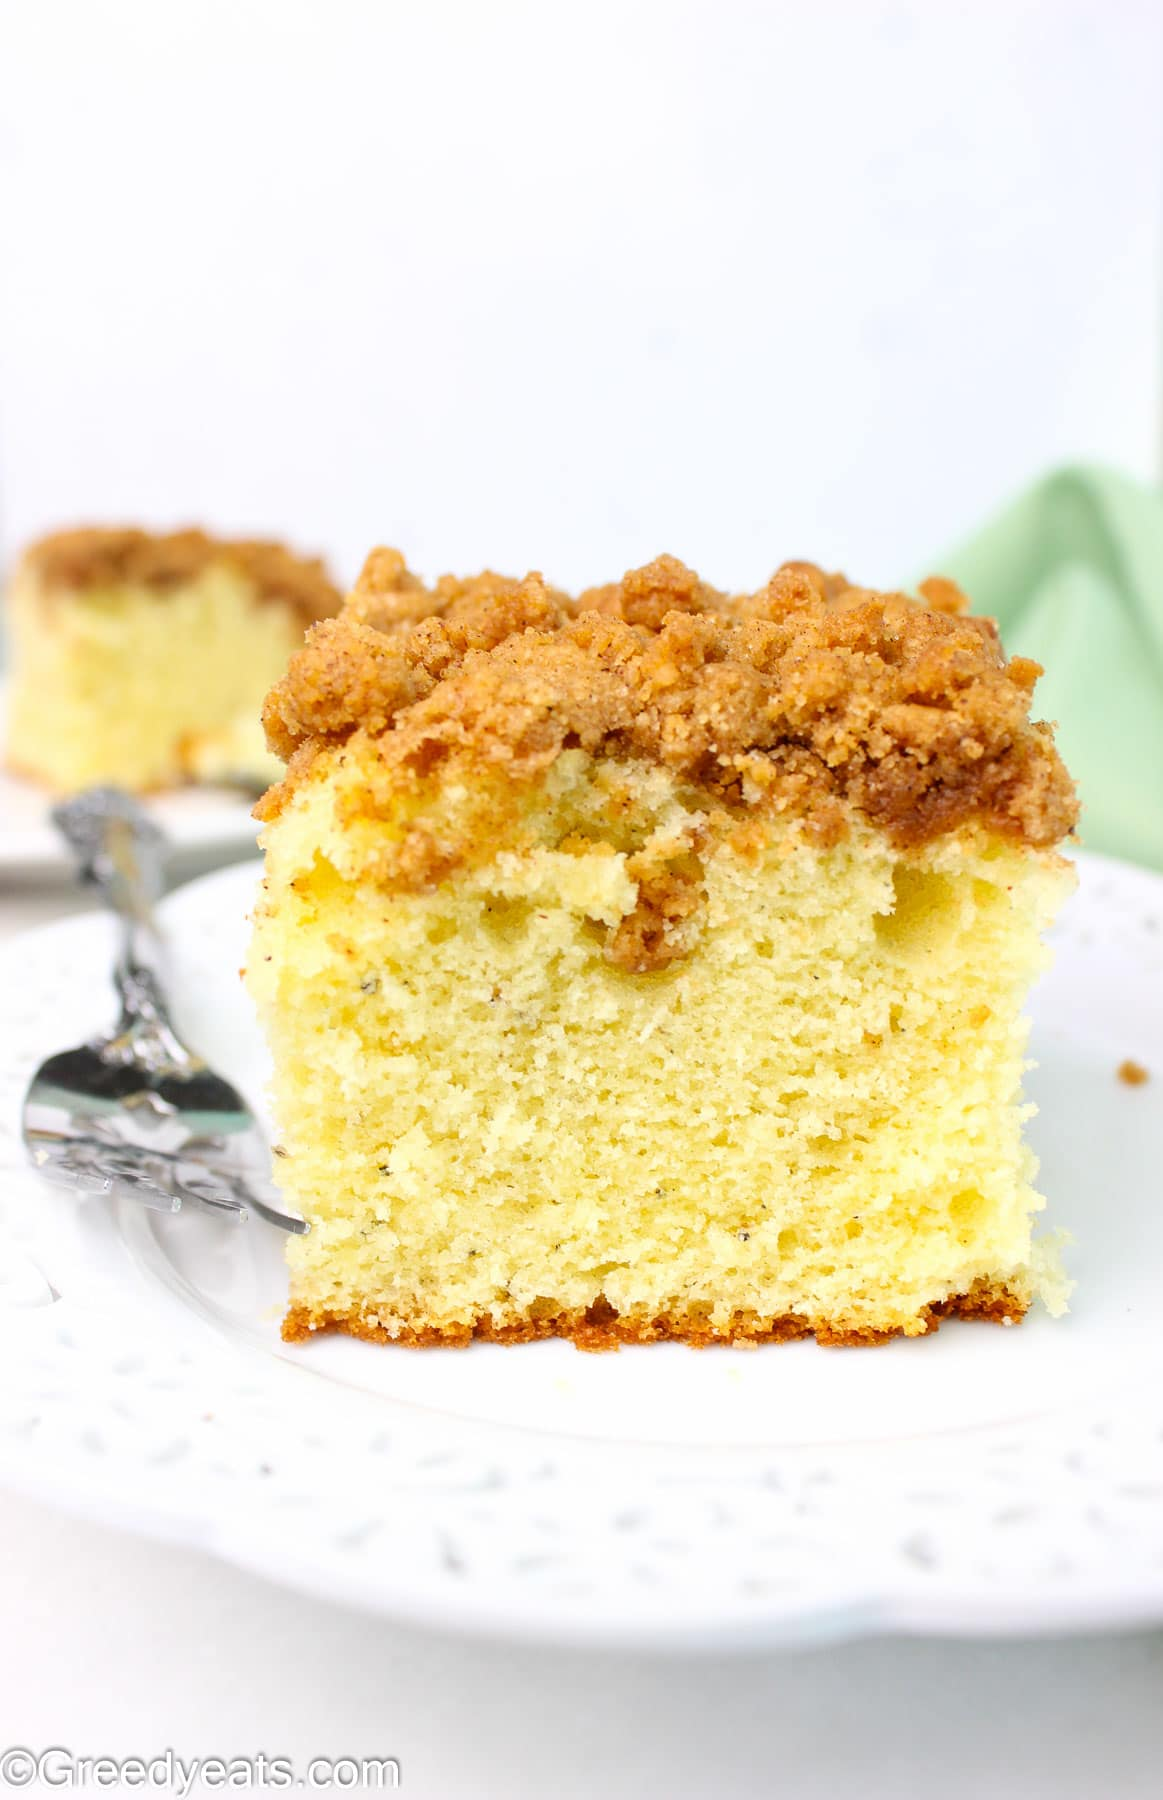 Soft, fluffy yet tender coffee cake slice with thick and crunchy crumb topping.